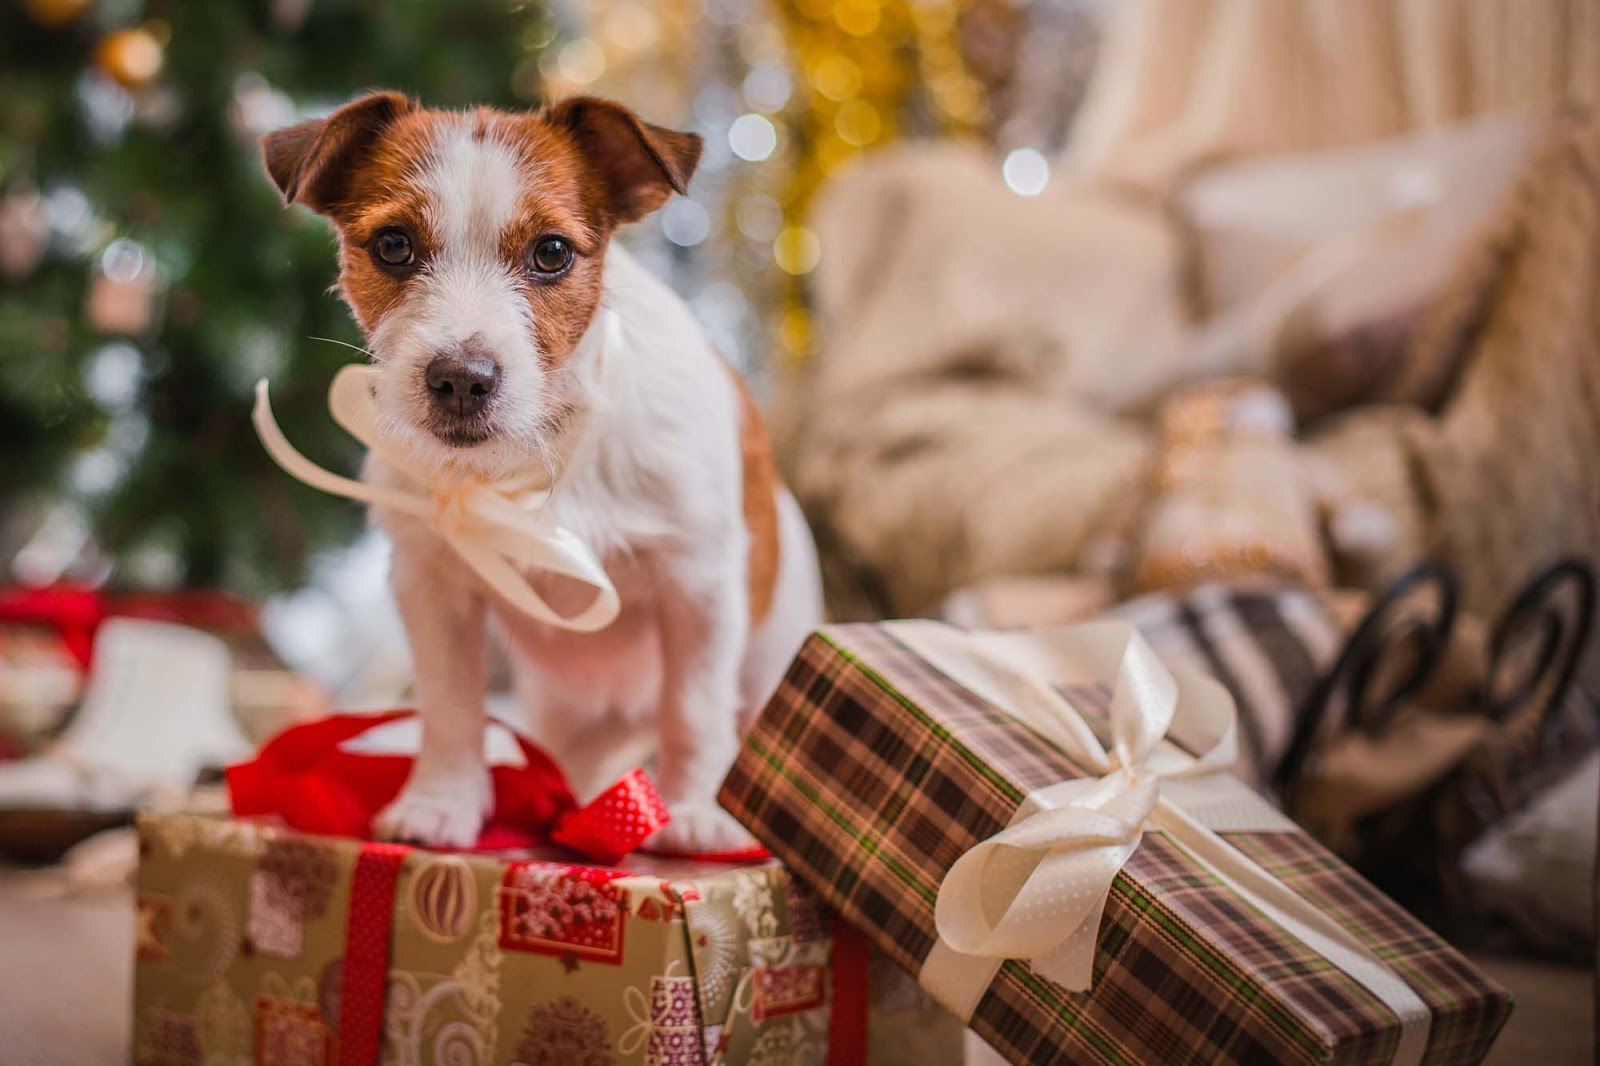 Jack Russell Terrier puppy perched on top of Christmas presents looks intensely at the camera